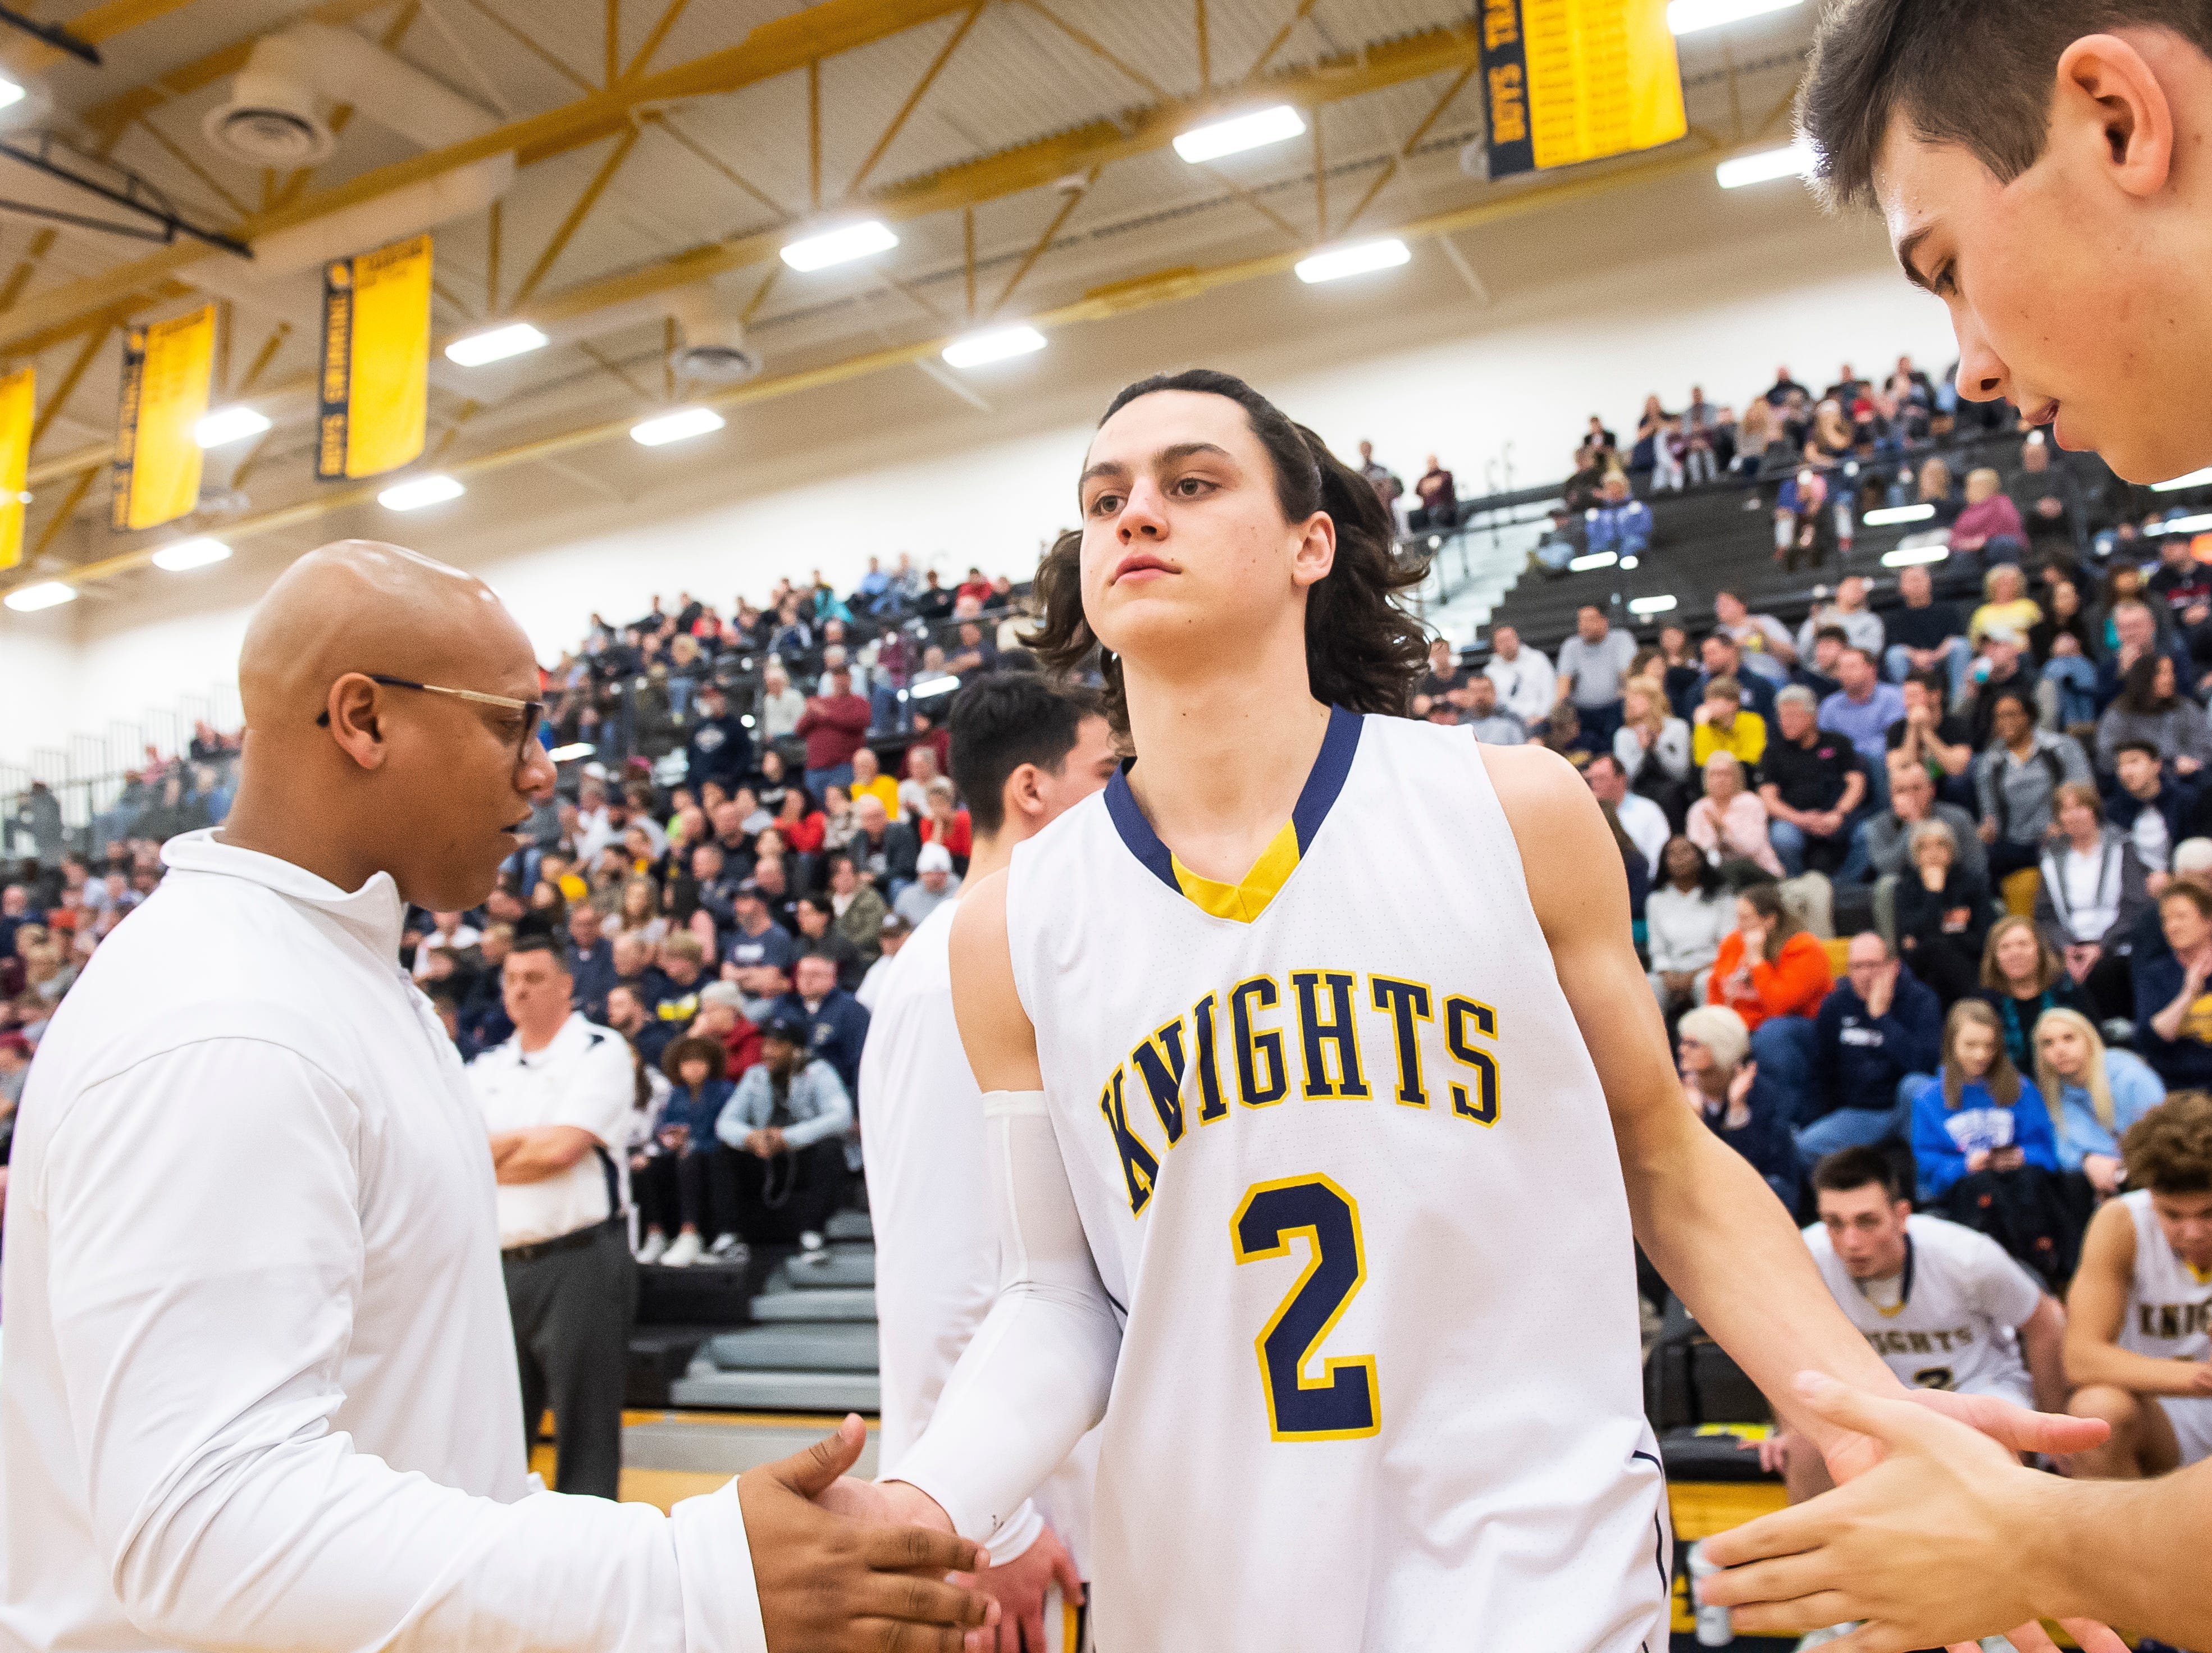 Eastern York's Bryce Henise is introduced during the starting lineups before a YAIAA quarterfinal game against New Oxford at Red Lion High School Saturday, February 9, 2019. Henise scored 10 points in the Golden Knights' loss.